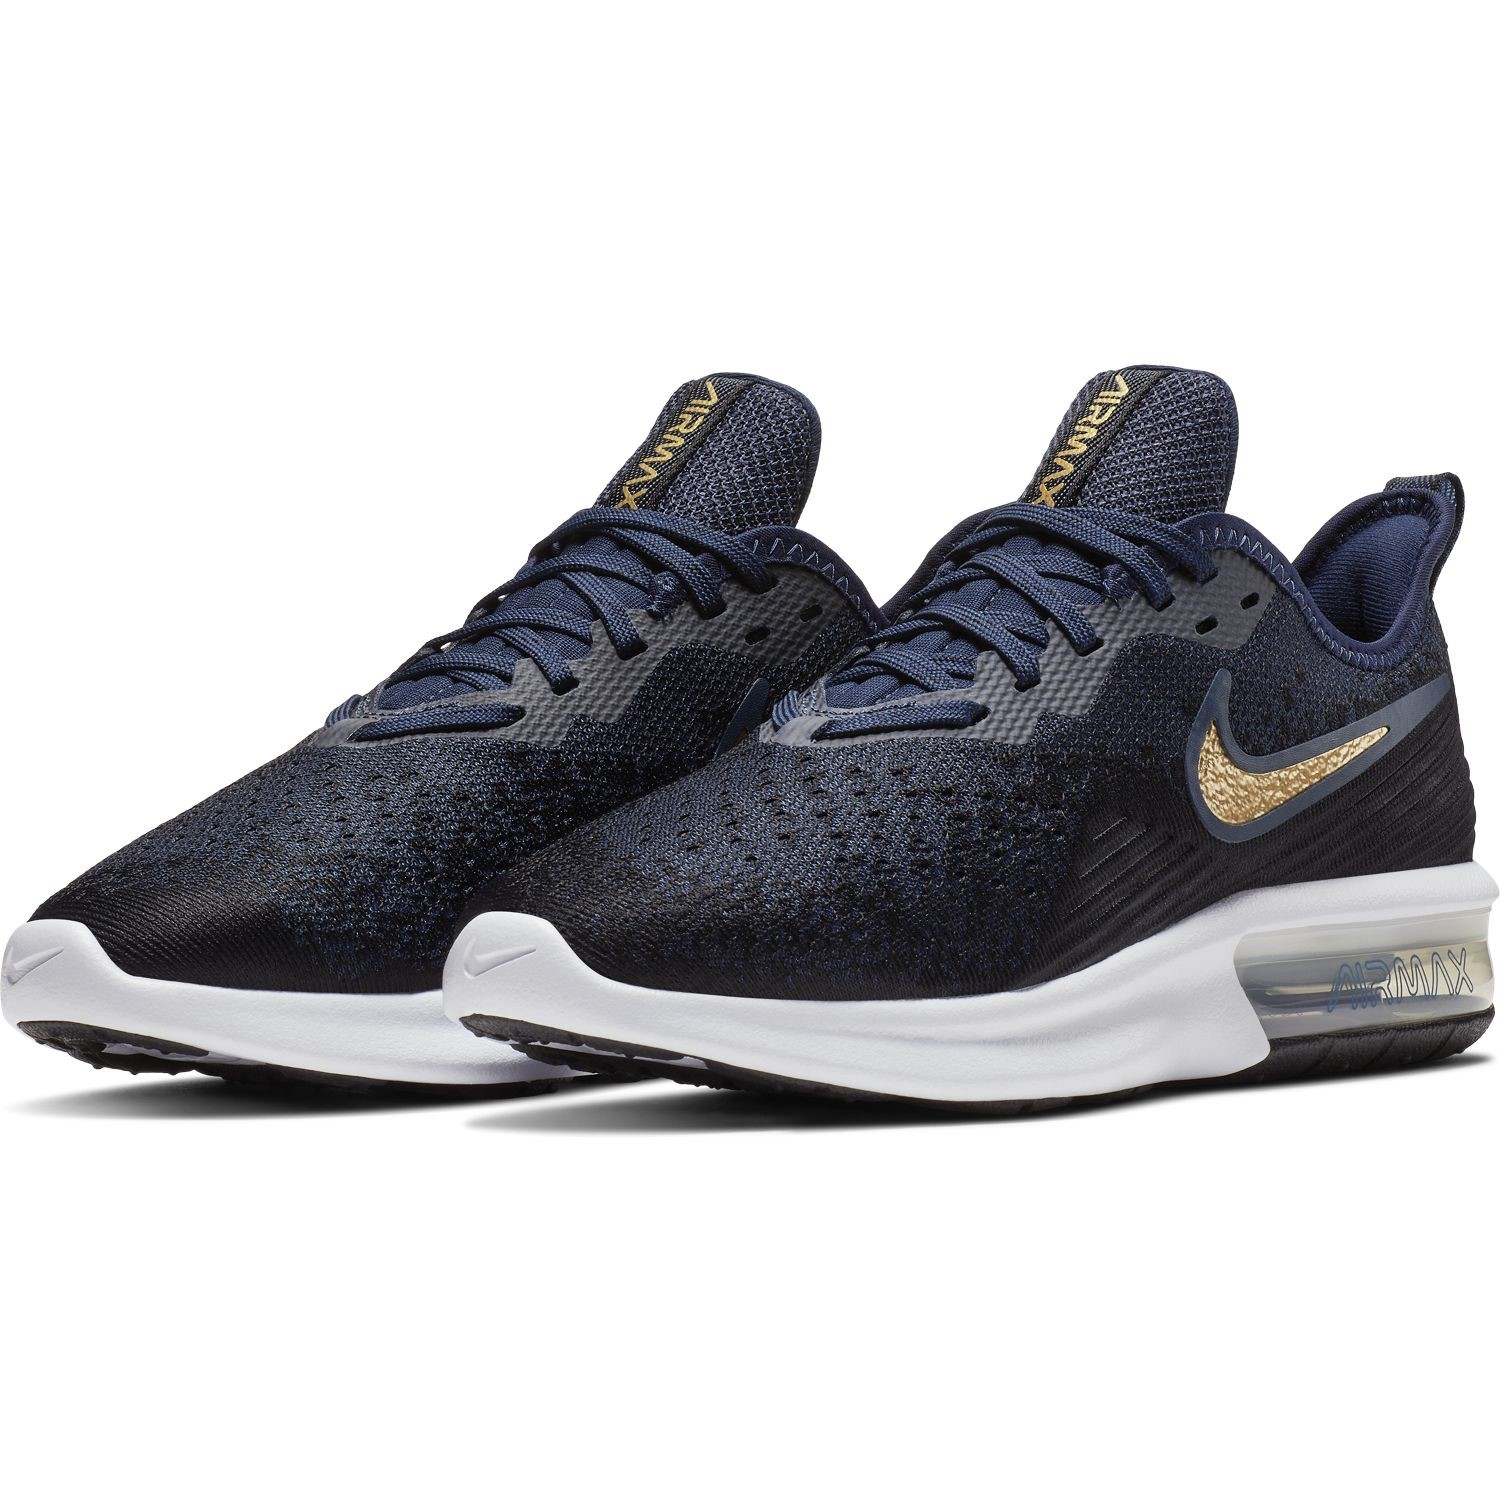 2d4f5efff76 Nike Air Max Sequent 4 - Womens Sneakers - Black Metallic Gold Obsidian